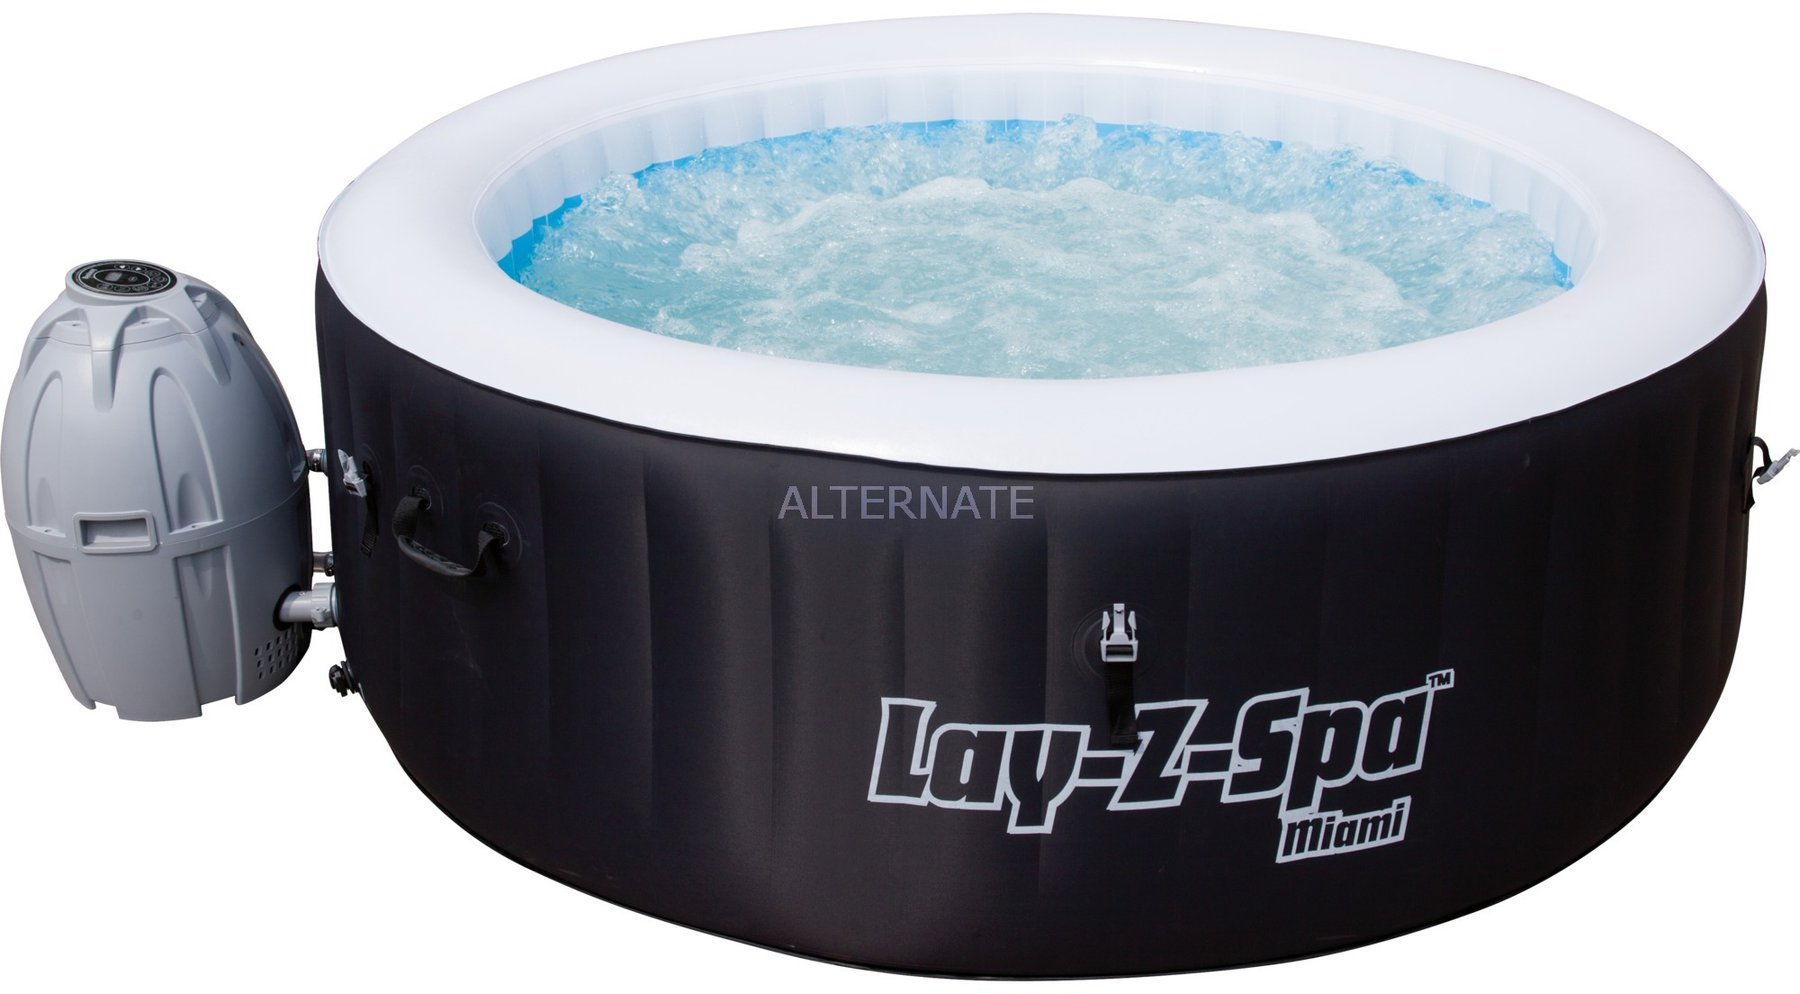 Aufblasbarer Pool Heizung Bestway Lay Z Spa Miami Whirlpool 54123